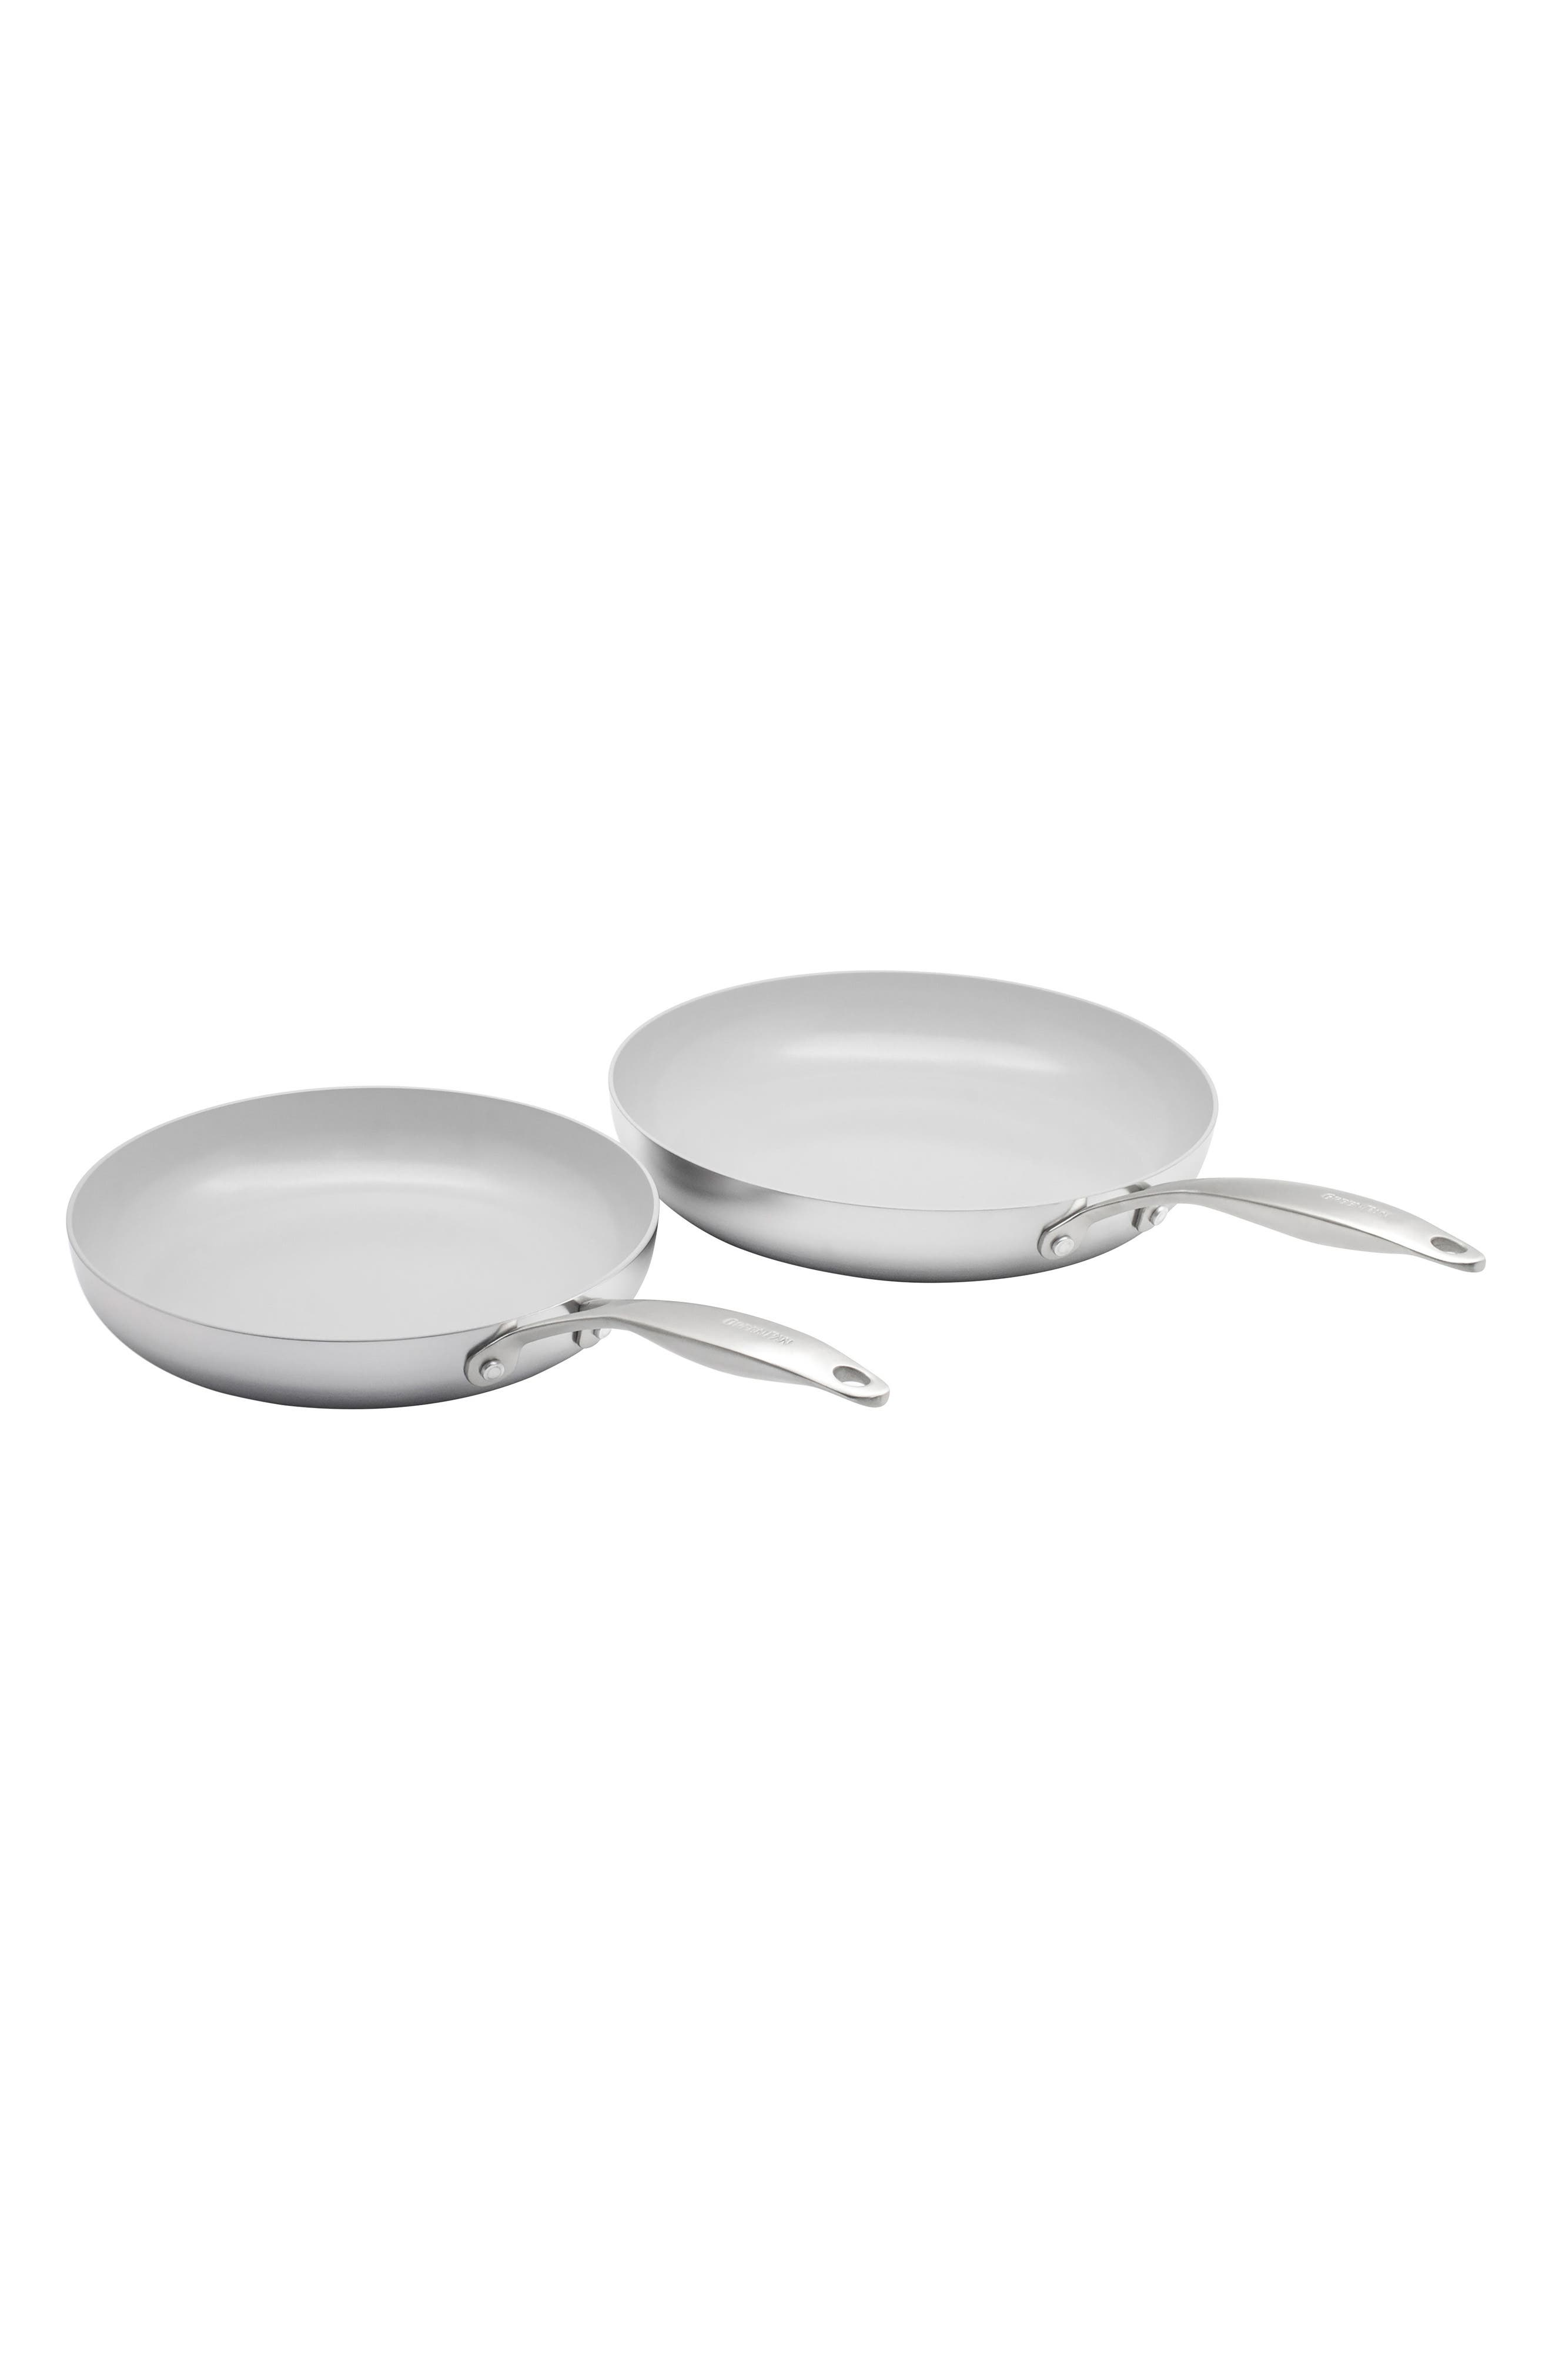 Venice Pro 10-Inch & 12-Inch Multilayer Stainless Steel Ceramic Nonstick Frying Pan Set,                         Main,                         color, Stainless Steel